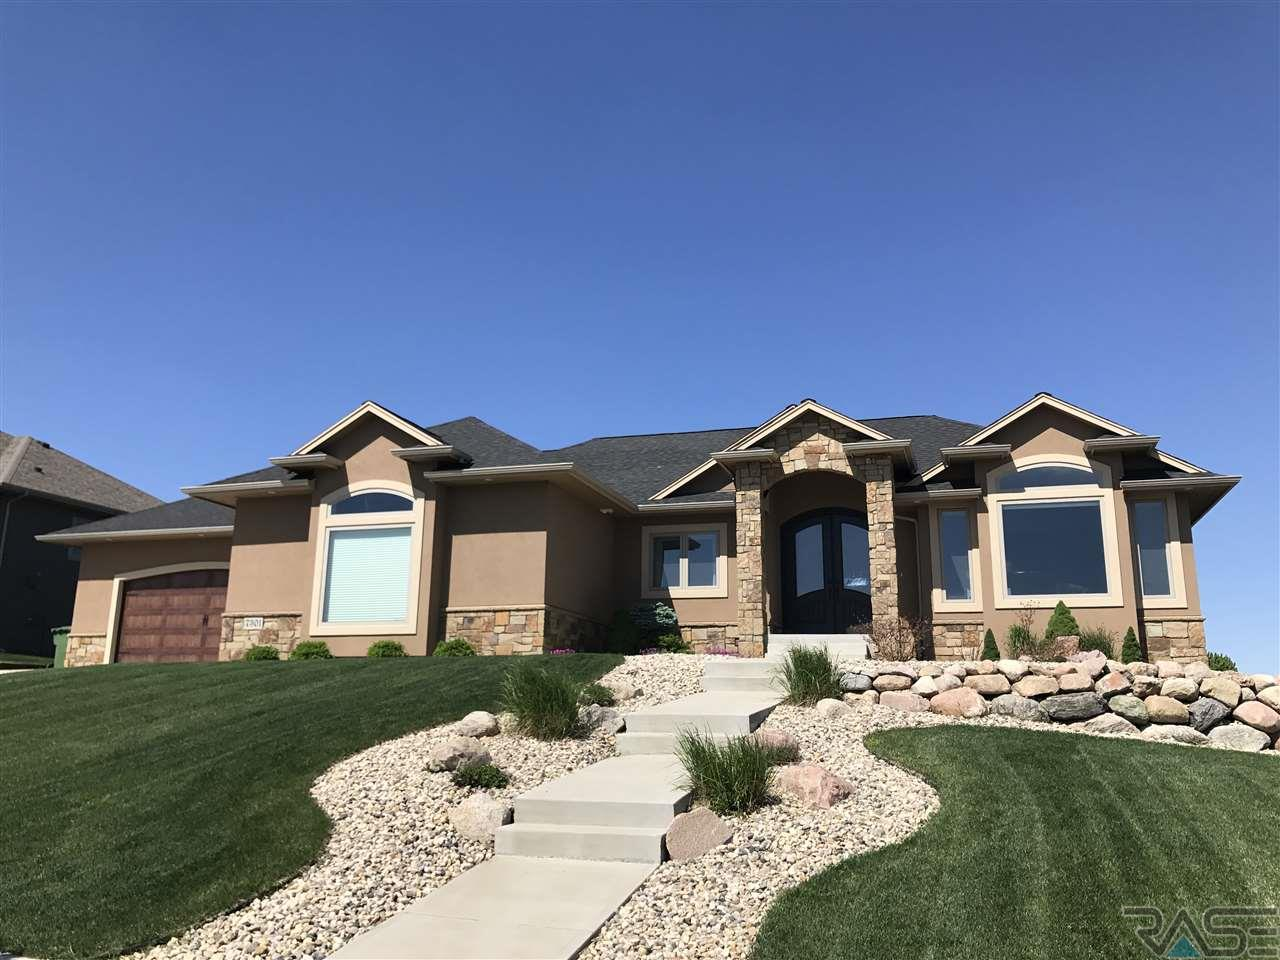 7301 S Meredith Ave, Sioux Falls, SD 57108